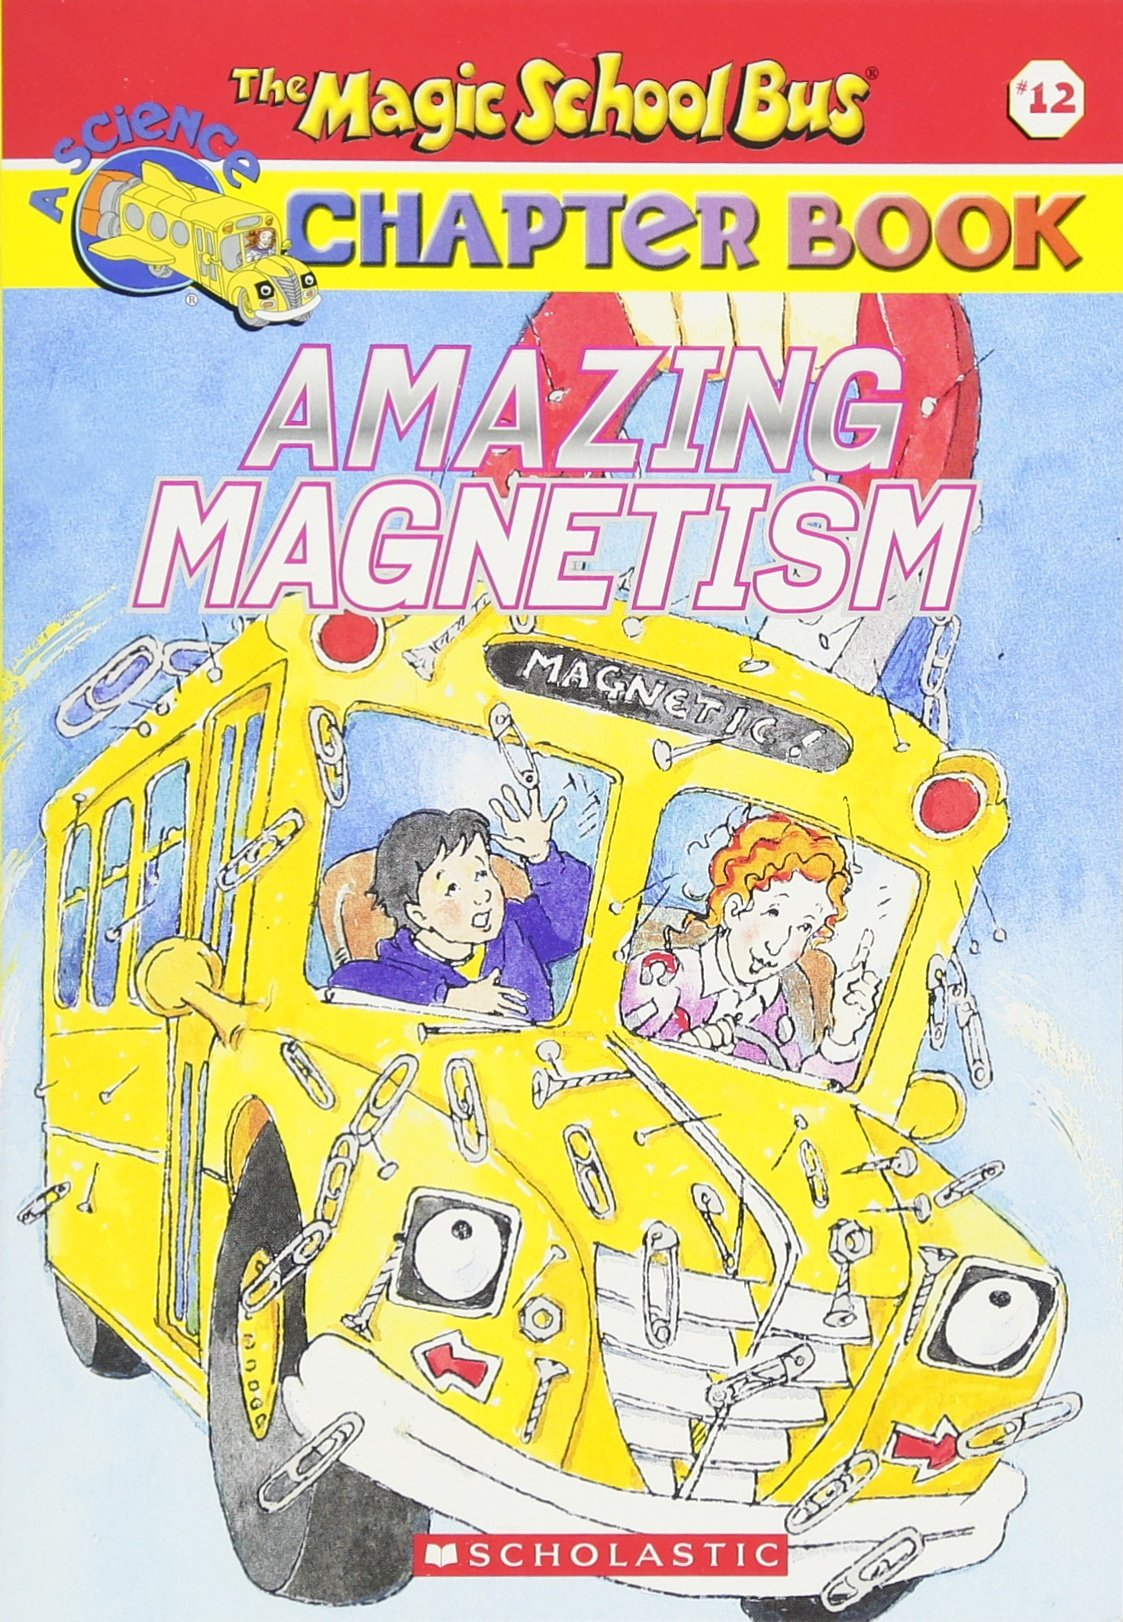 Amazing Magnetism Magic School Bus Chapter Book 12 Rebecca